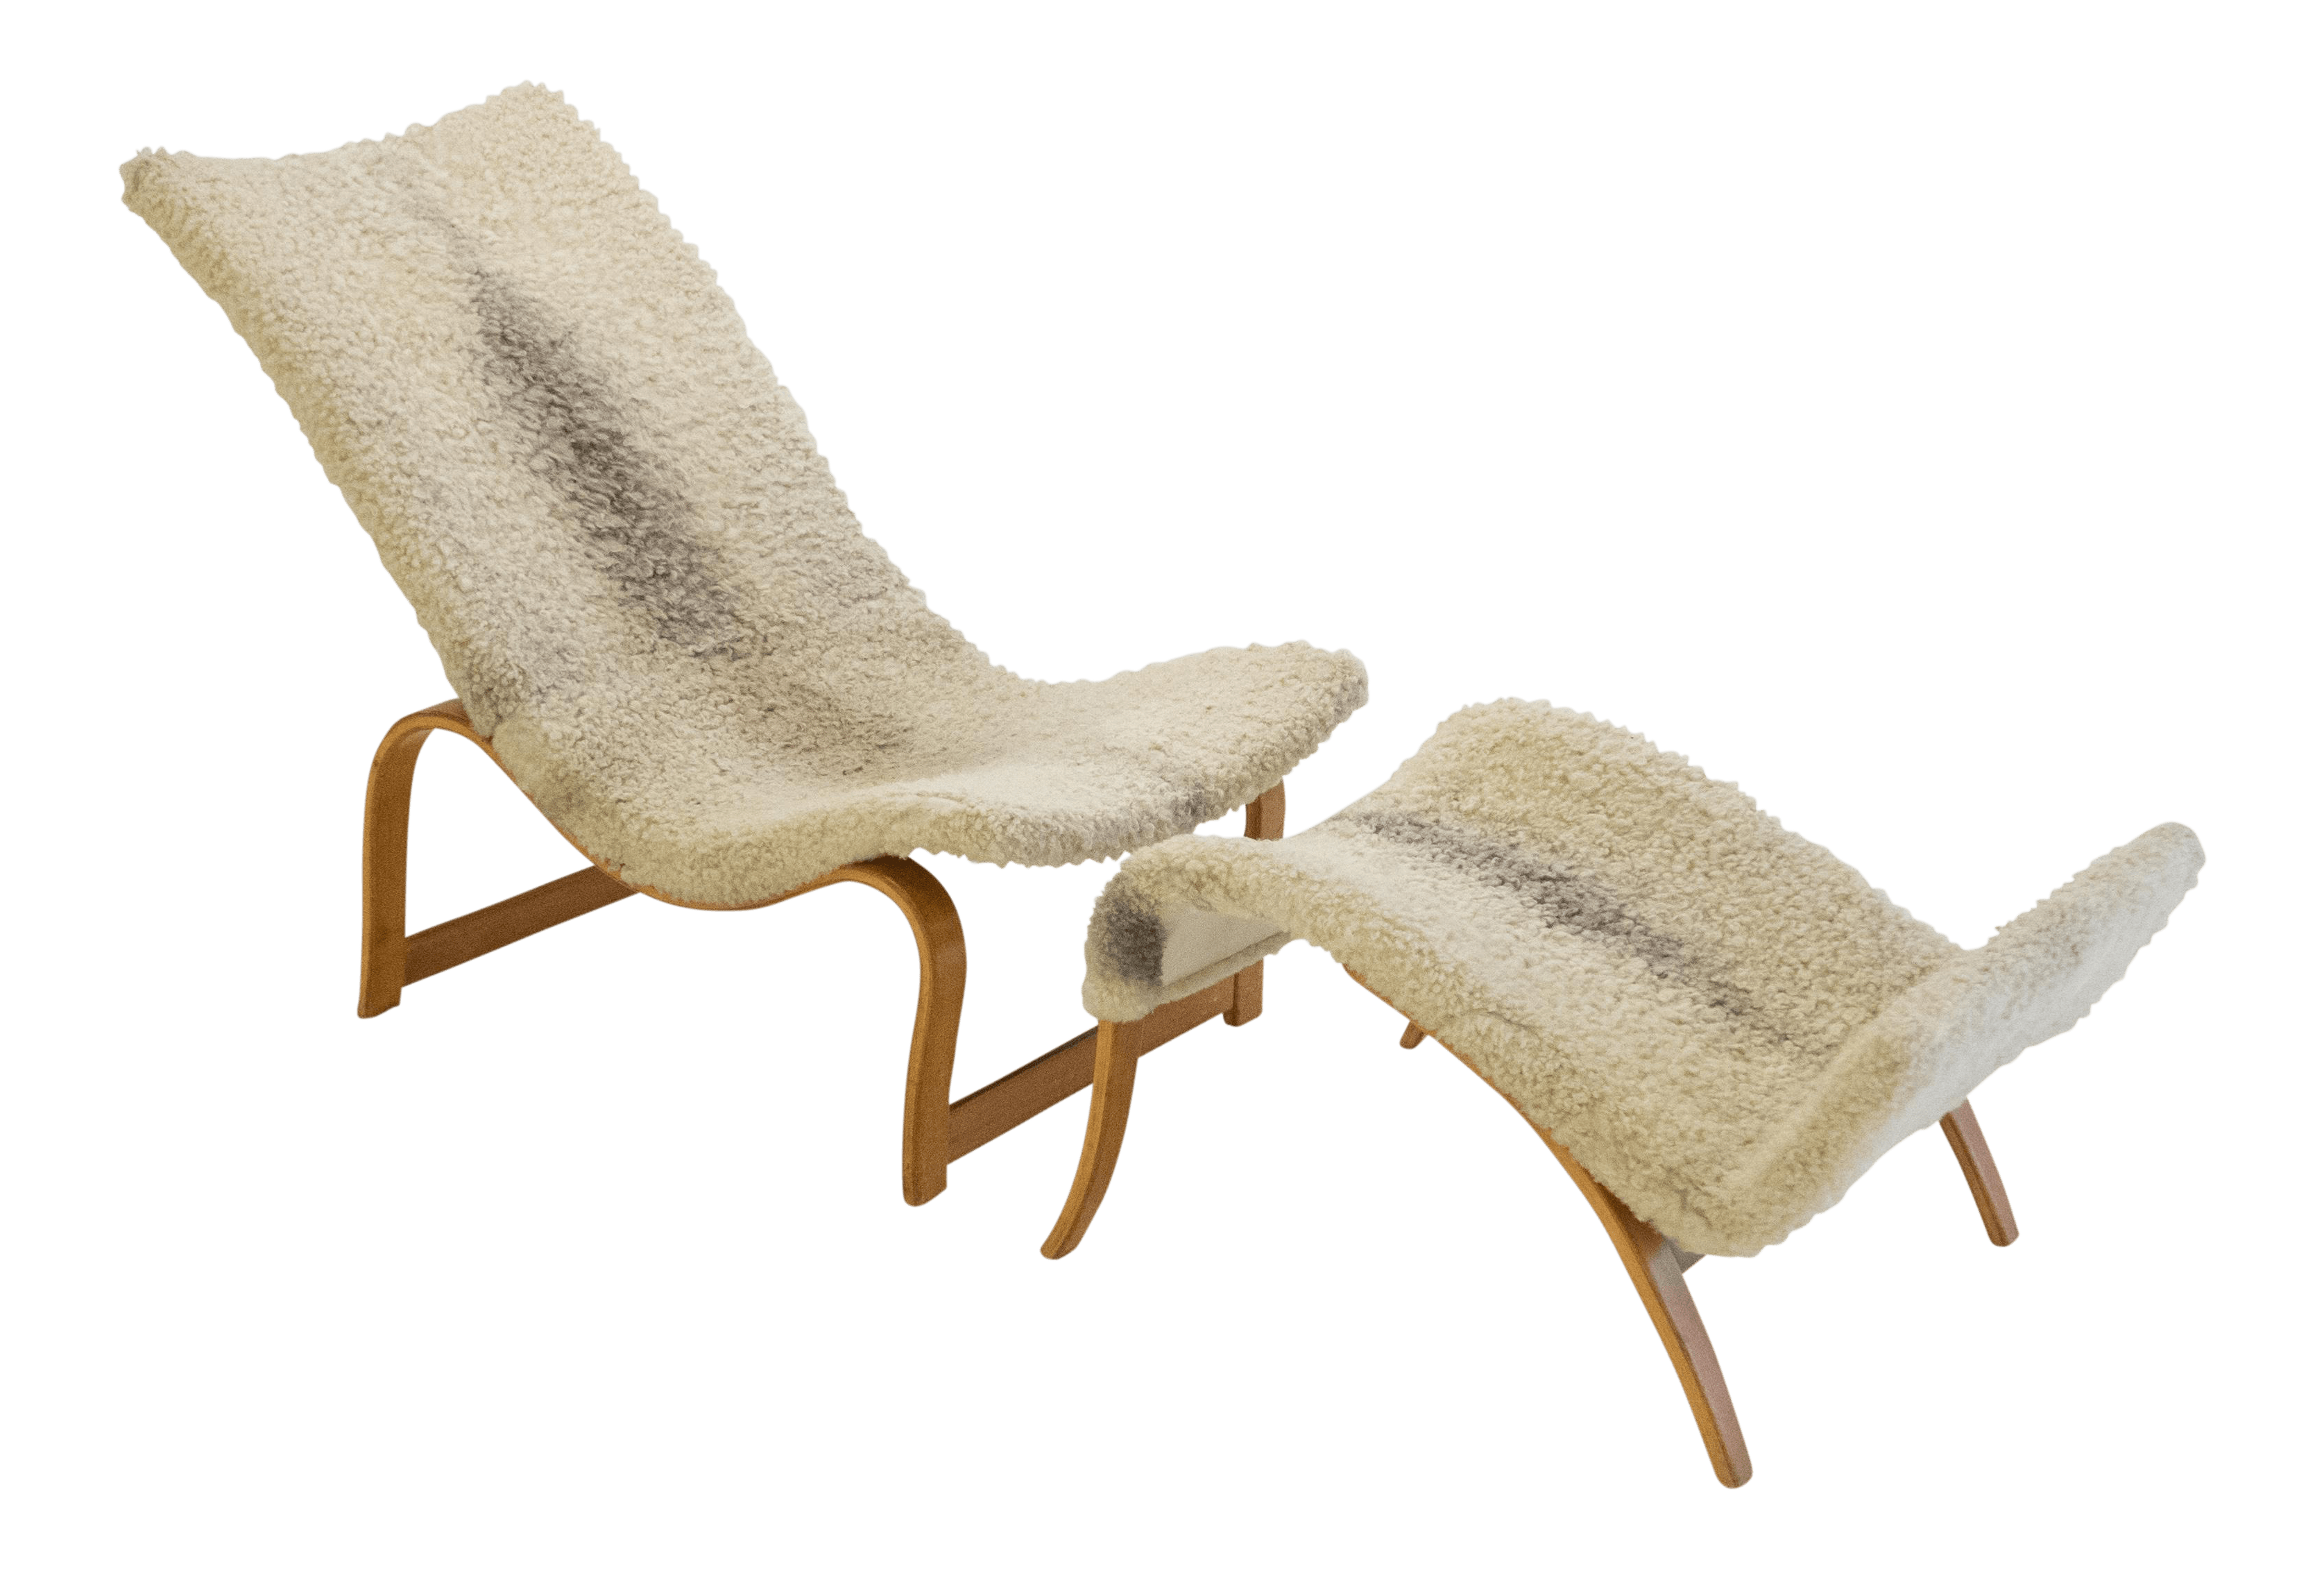 easy chairs with footrests tempur pedic chair luxury bruno mathsson model 36 footrest decaso for sale